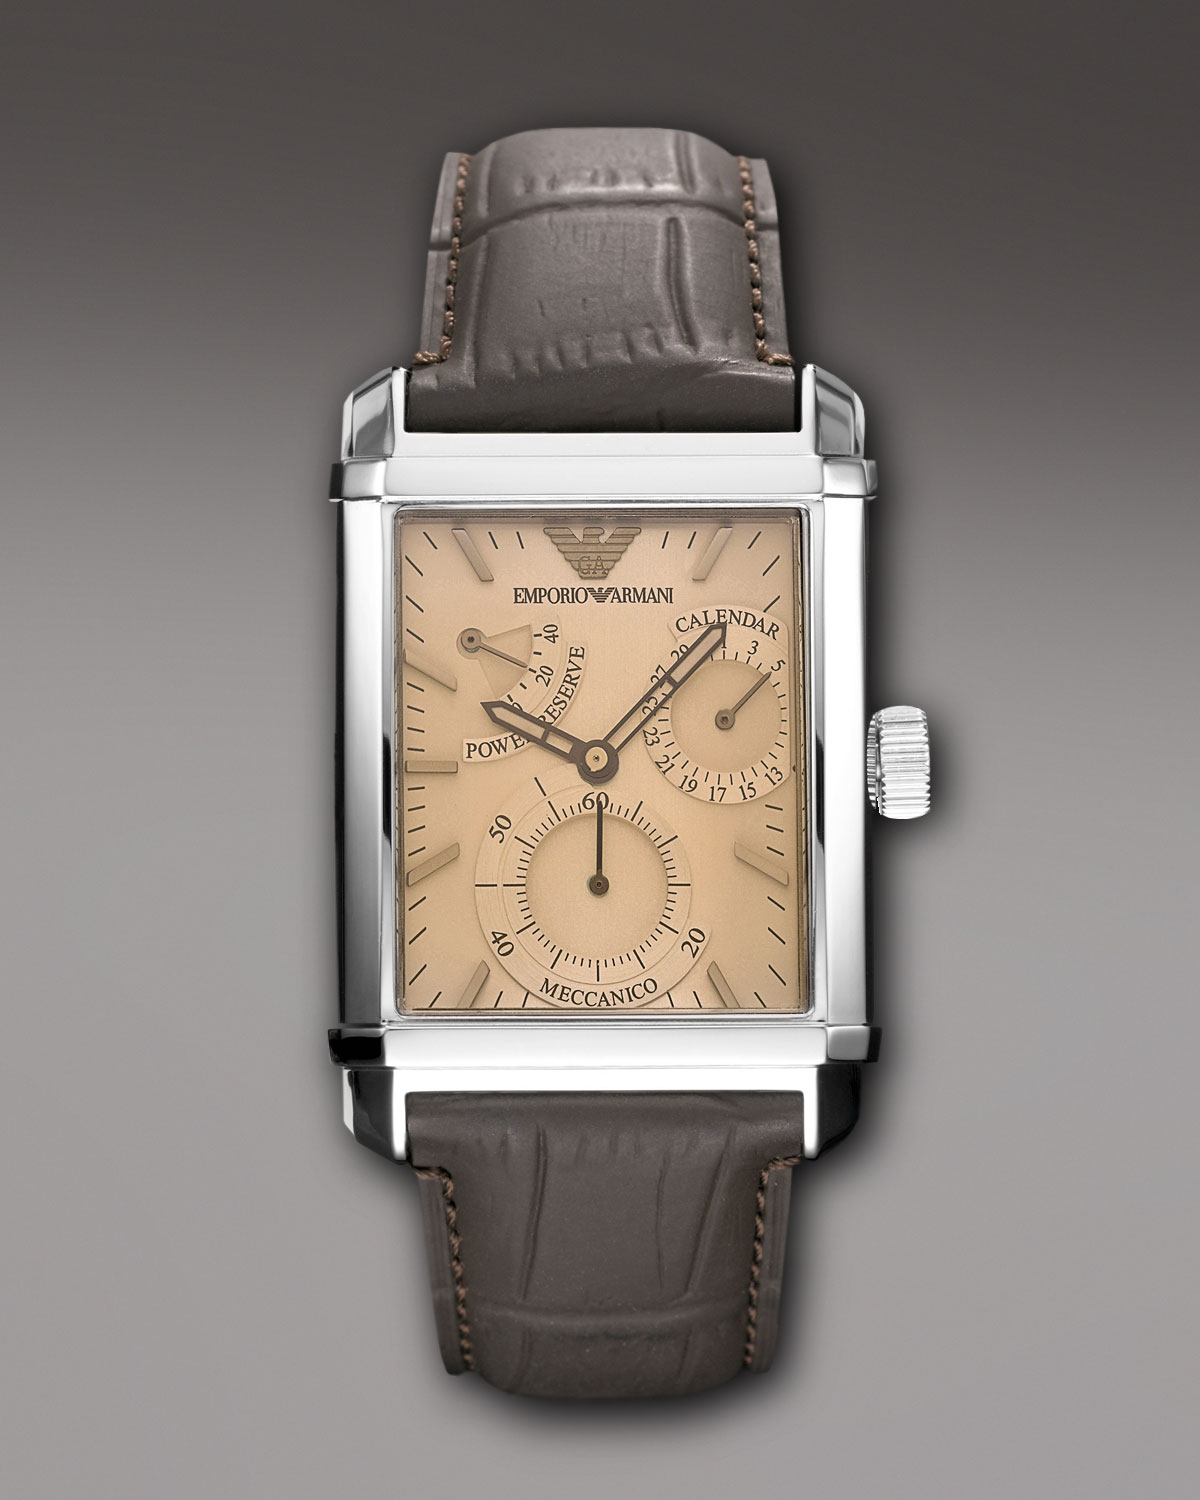 rectangular and case glashutte lange with an a triple understated watch made georg is in end the watches better dial features bezel do germany elegant germans sloped heyne it high lug lang enamel pleasing framing